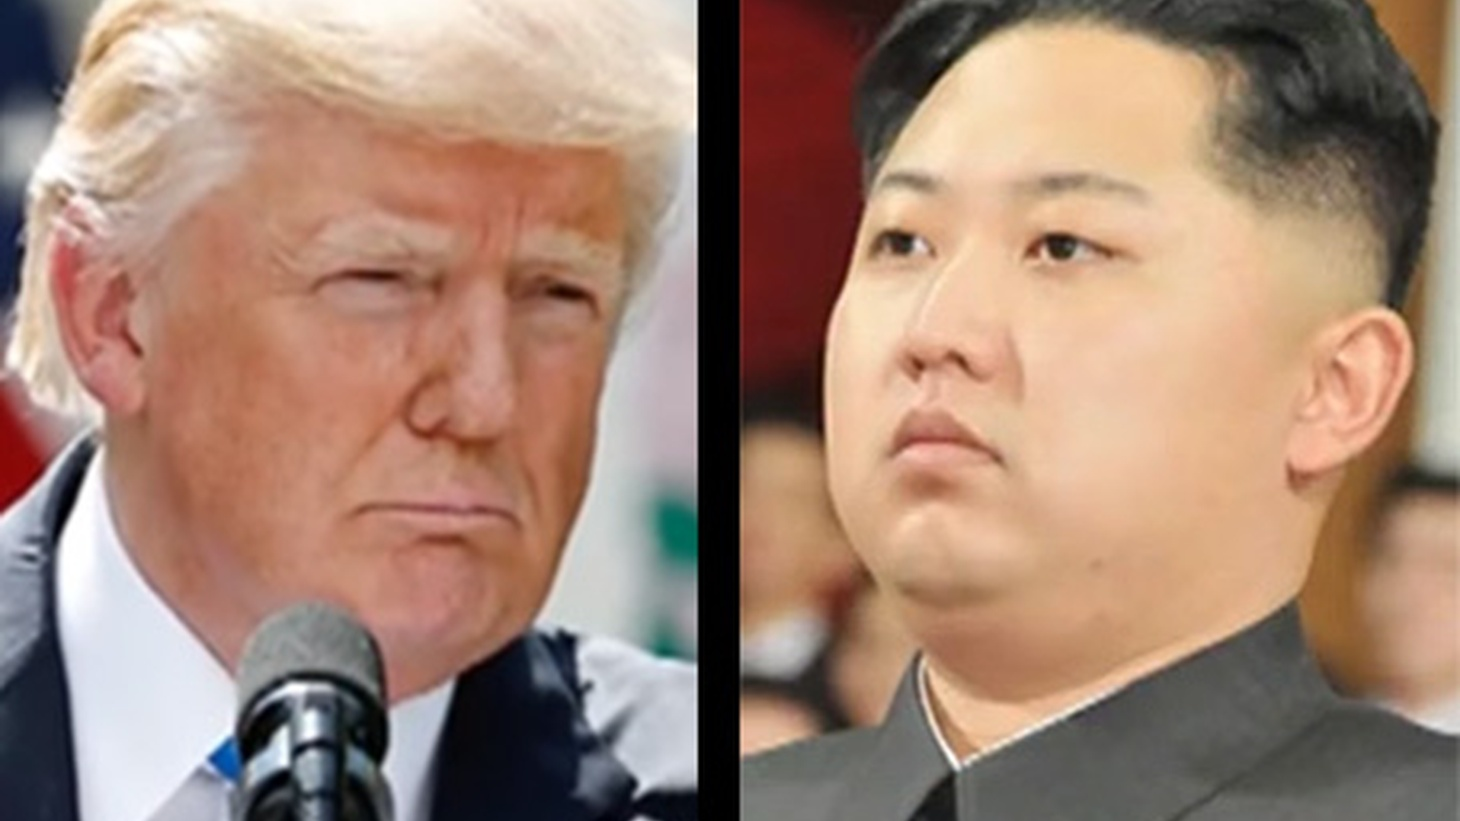 President Trump and North Korea's Kim Jung Un made provocative statements yesterday about the use of nuclear weapons. What are their respective messages, and do they understand one another?